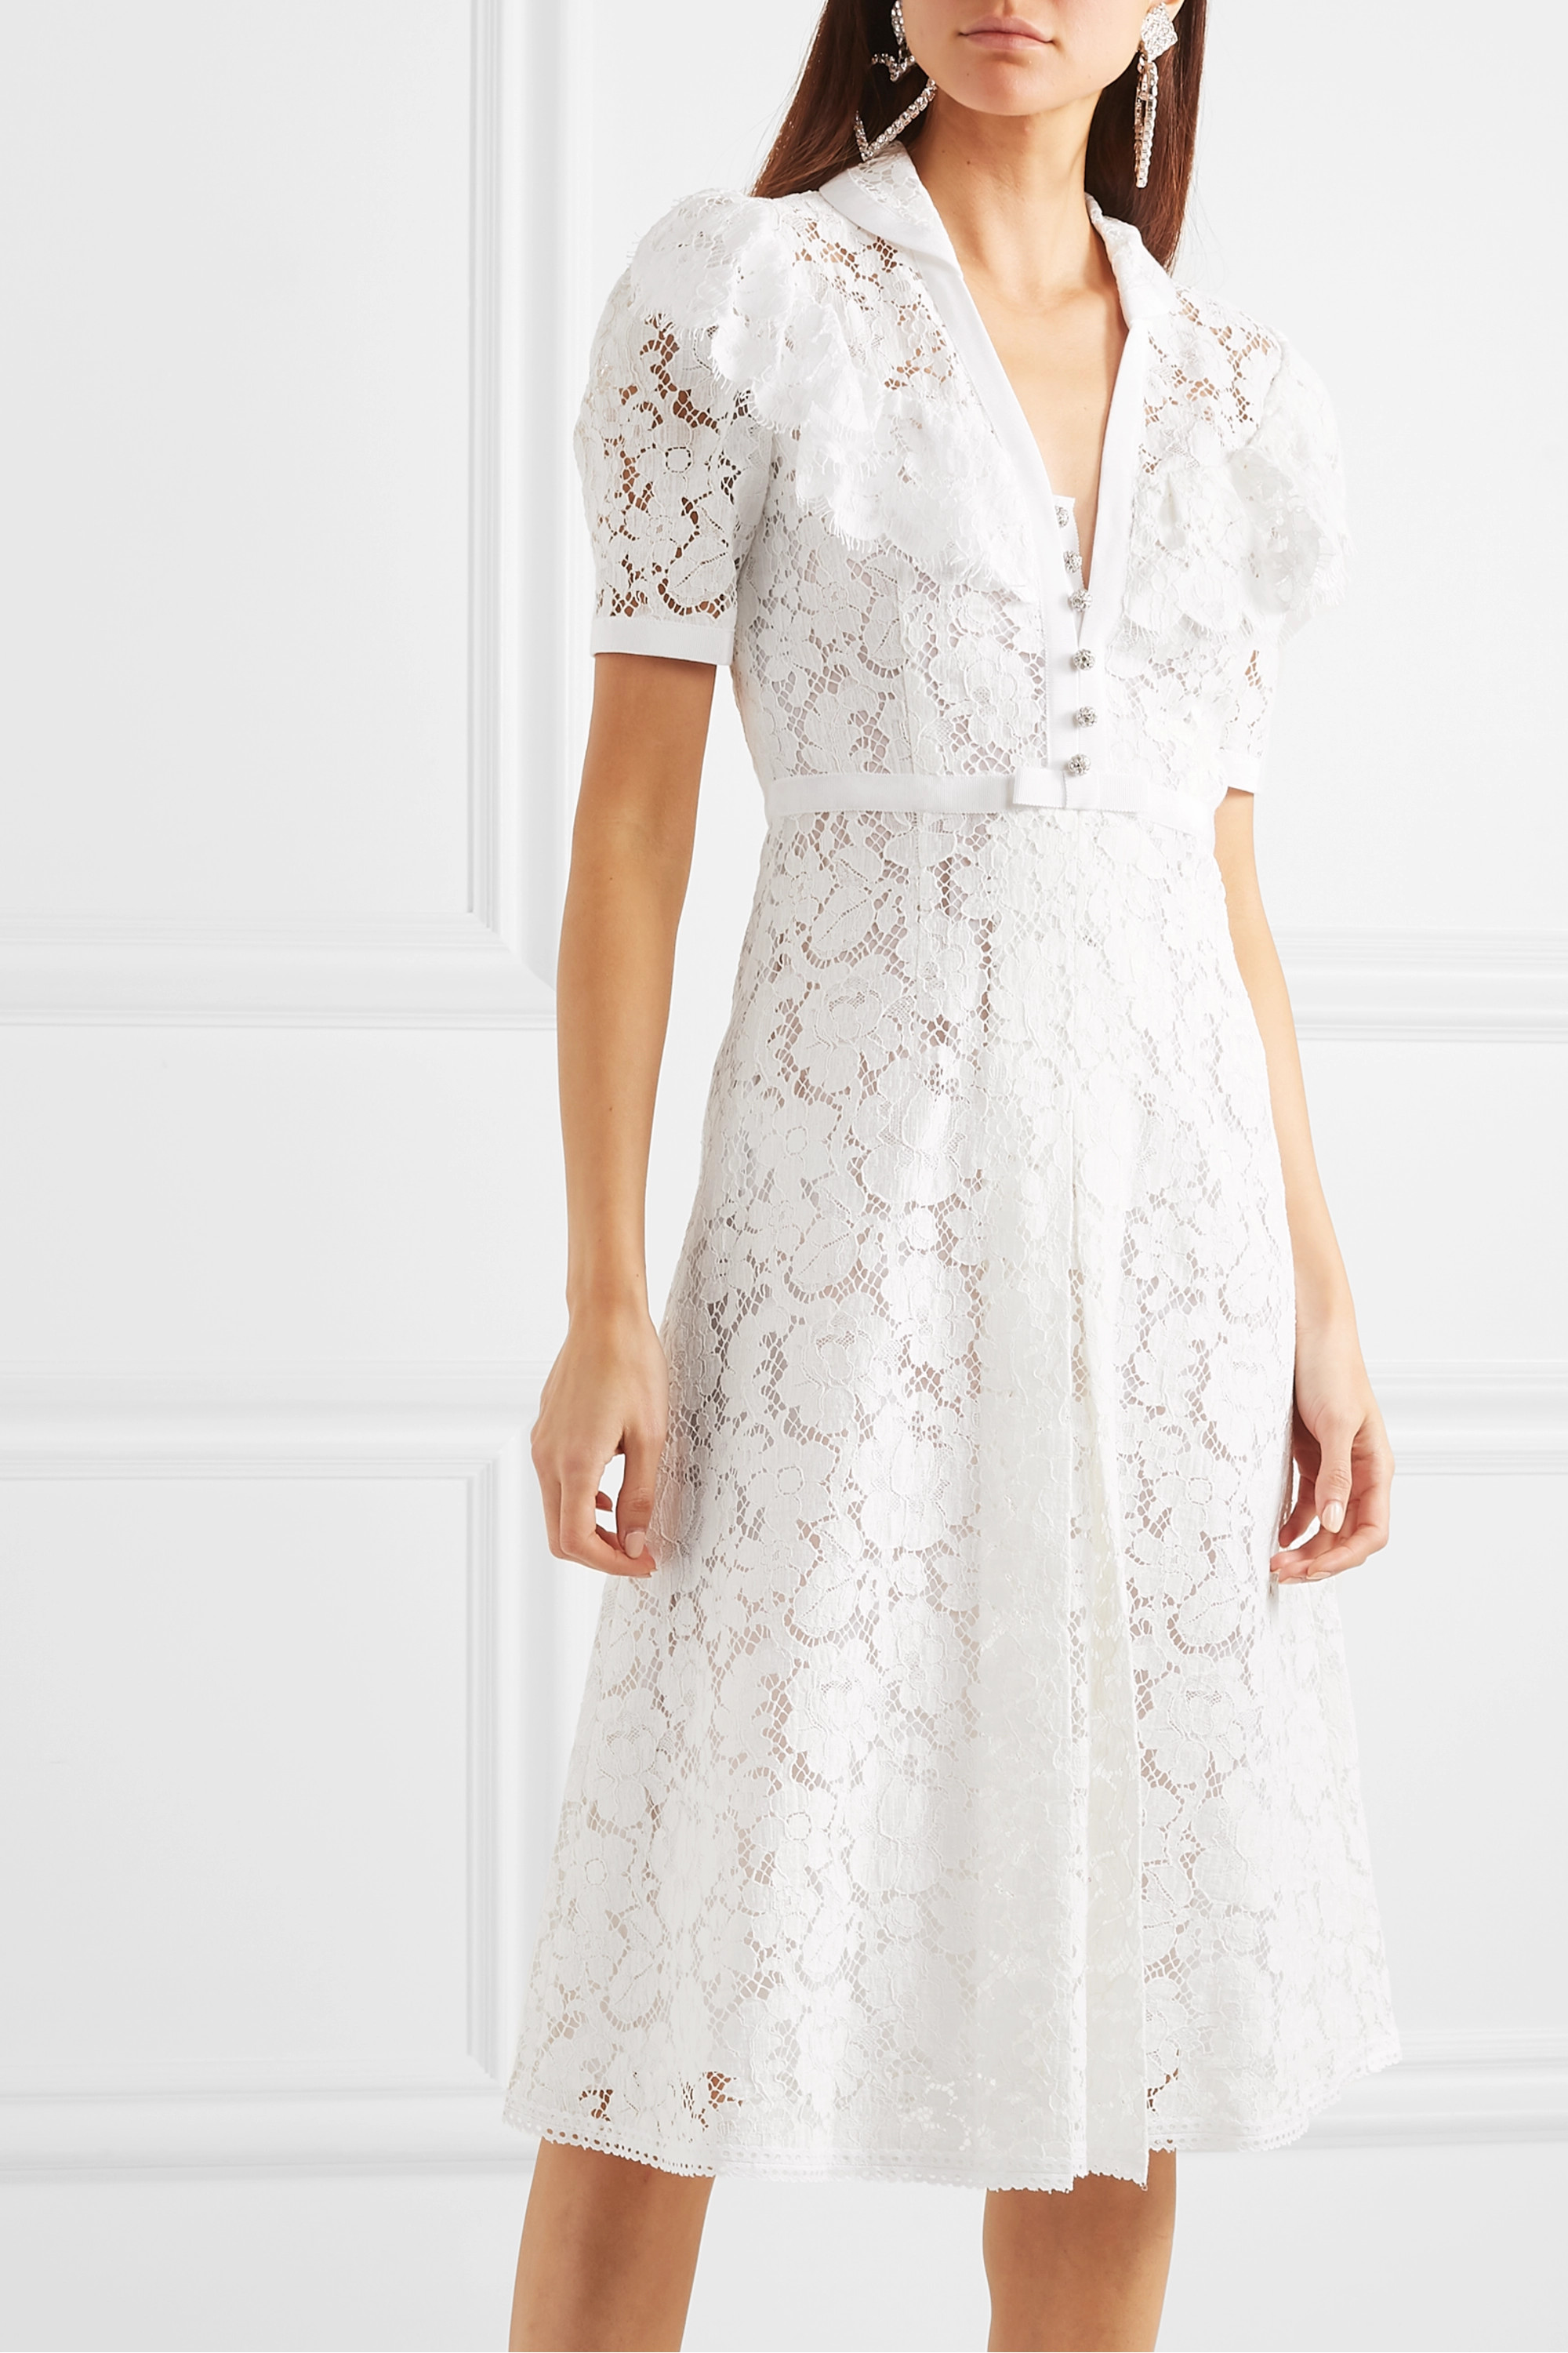 Miu Miu Crystal-embellished corded cotton-blend lace midi dress